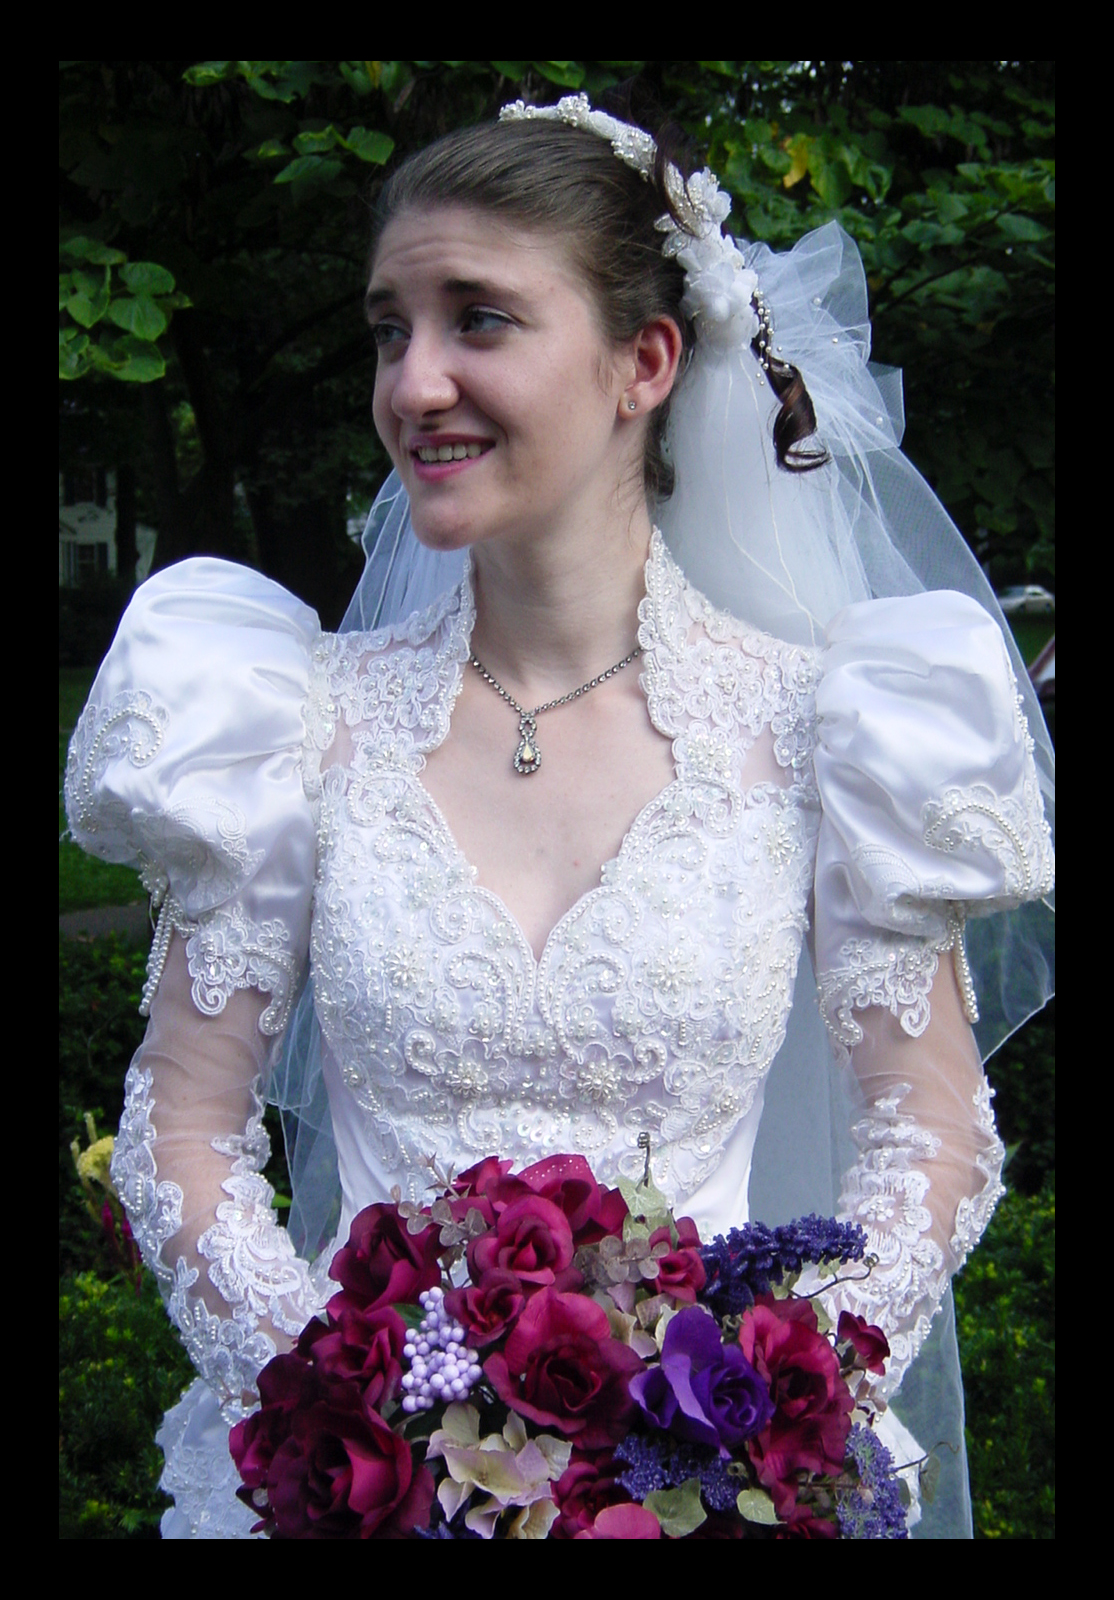 Maria s wedding dress was beautiful provided by morgan herself